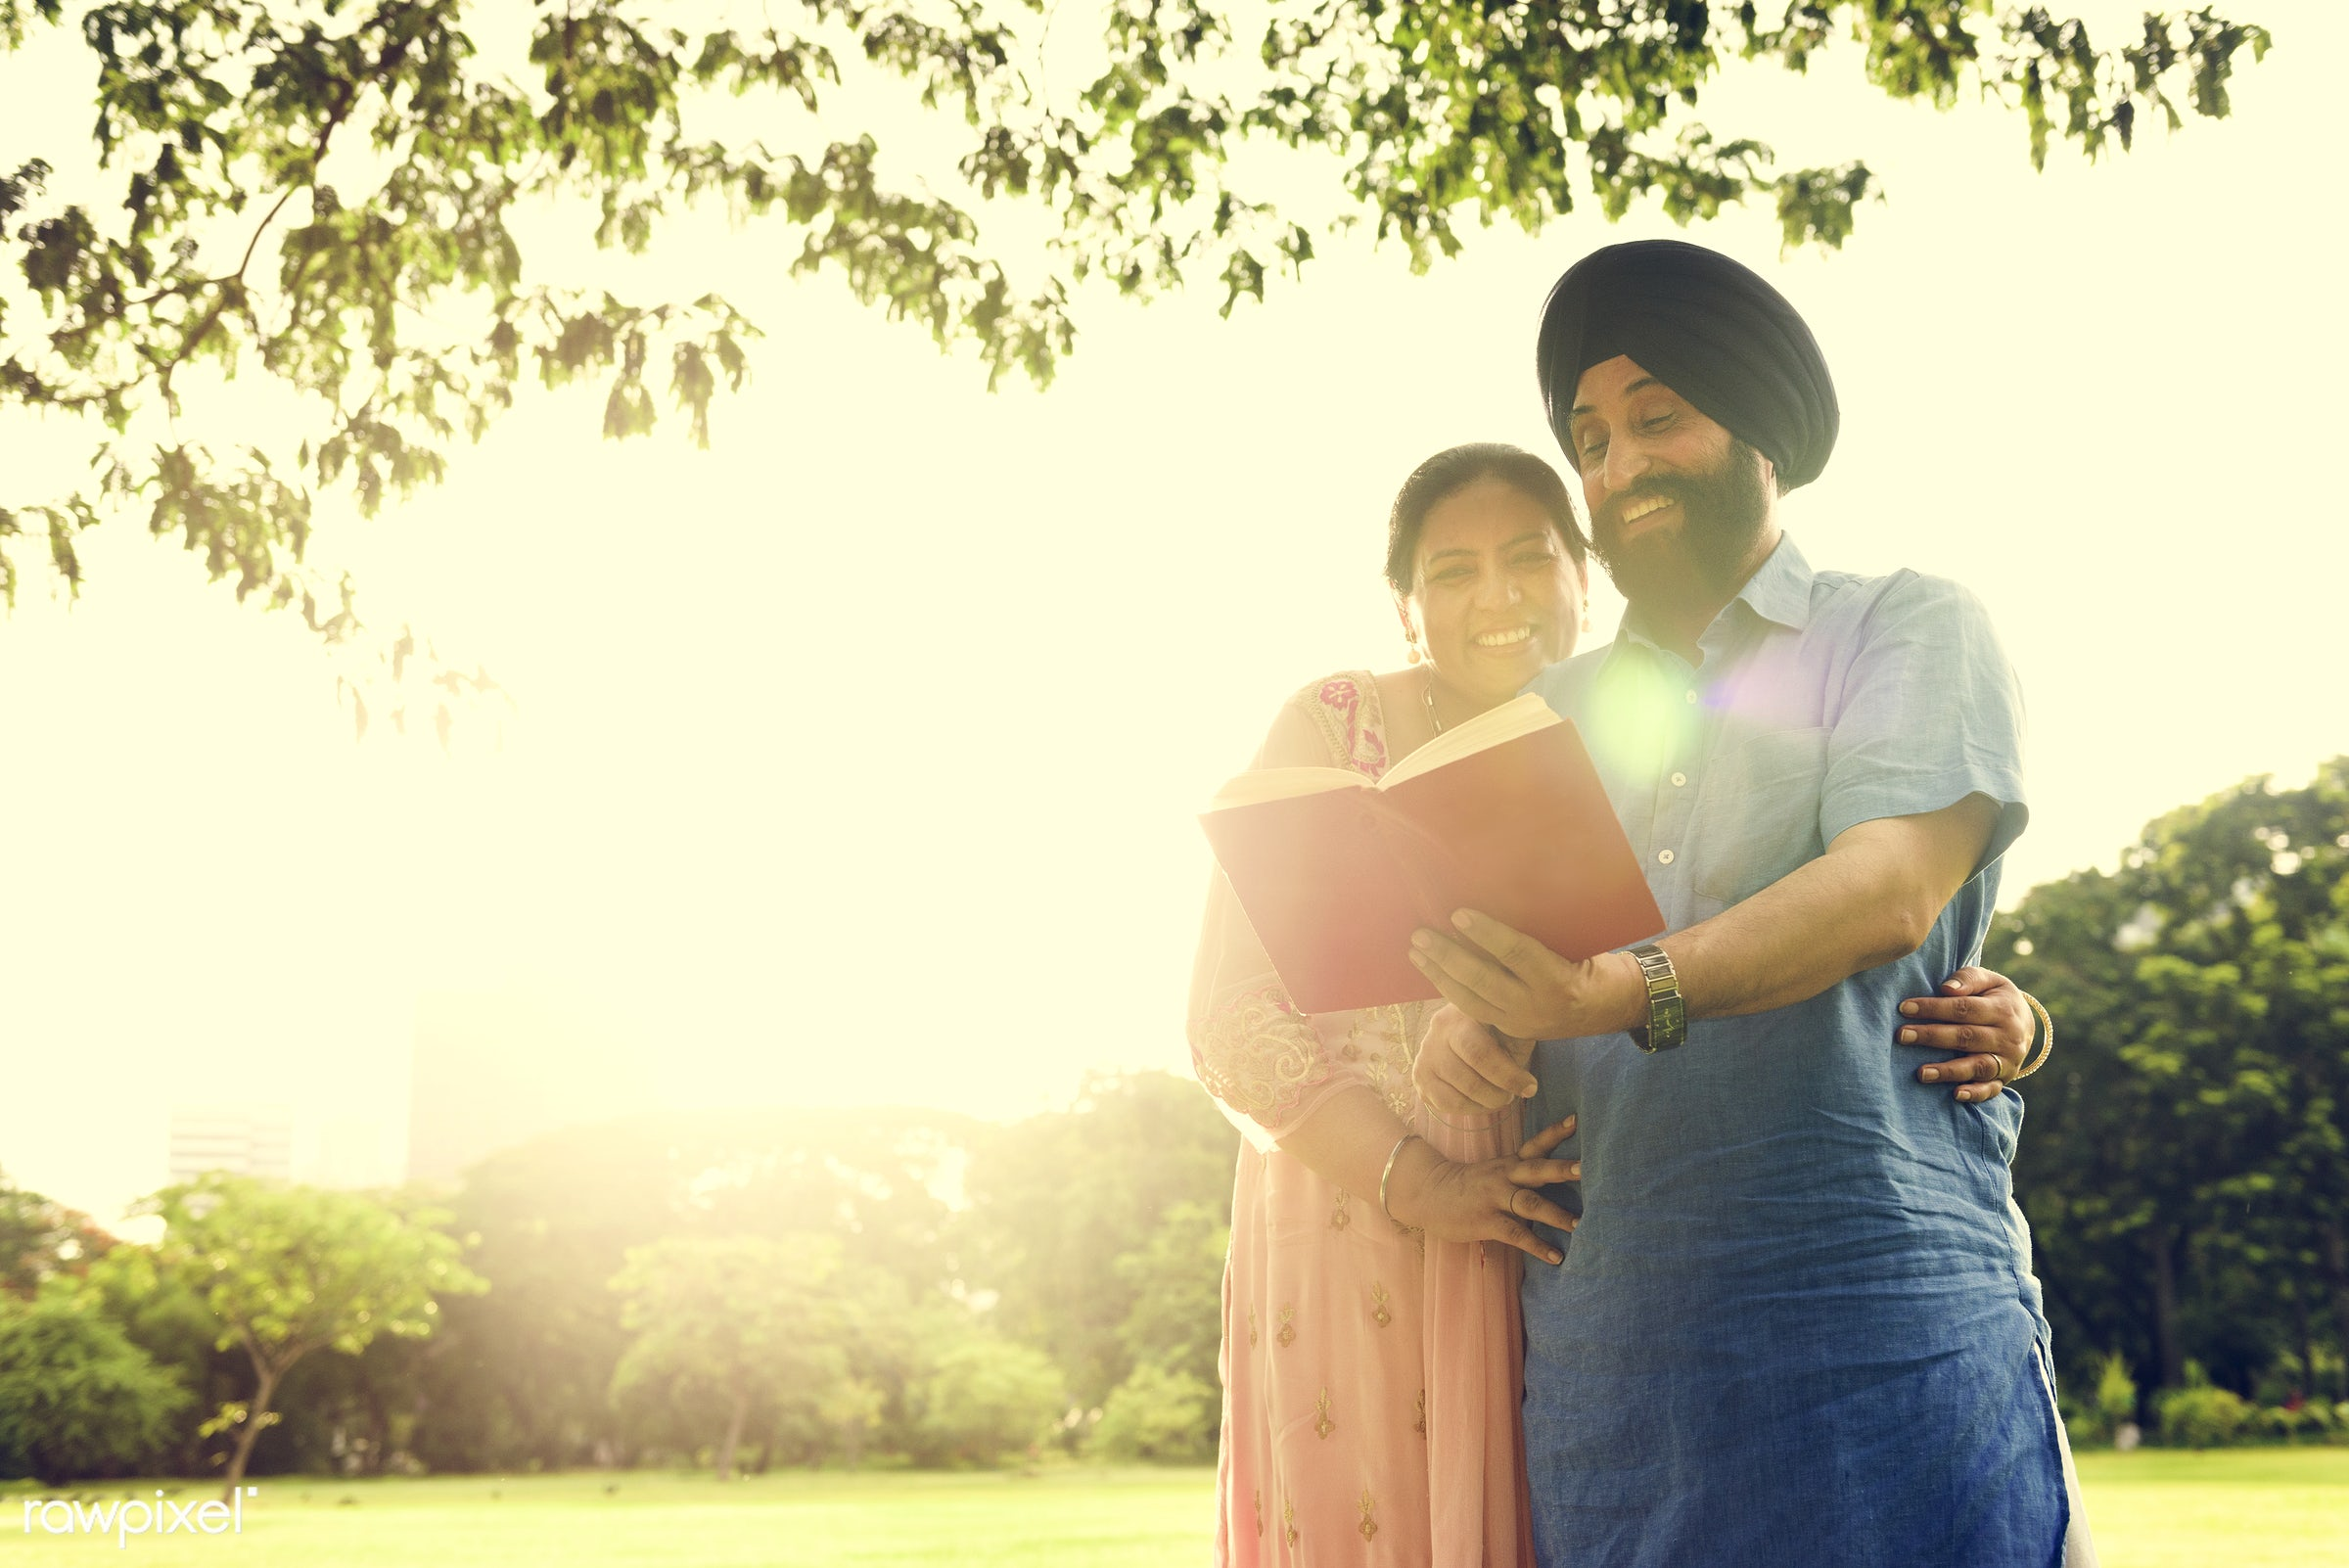 Loving senior Indian couple - activity, adult, asian, bonding, book, care, casual, cheerful, couple, day, ethnicity, family...